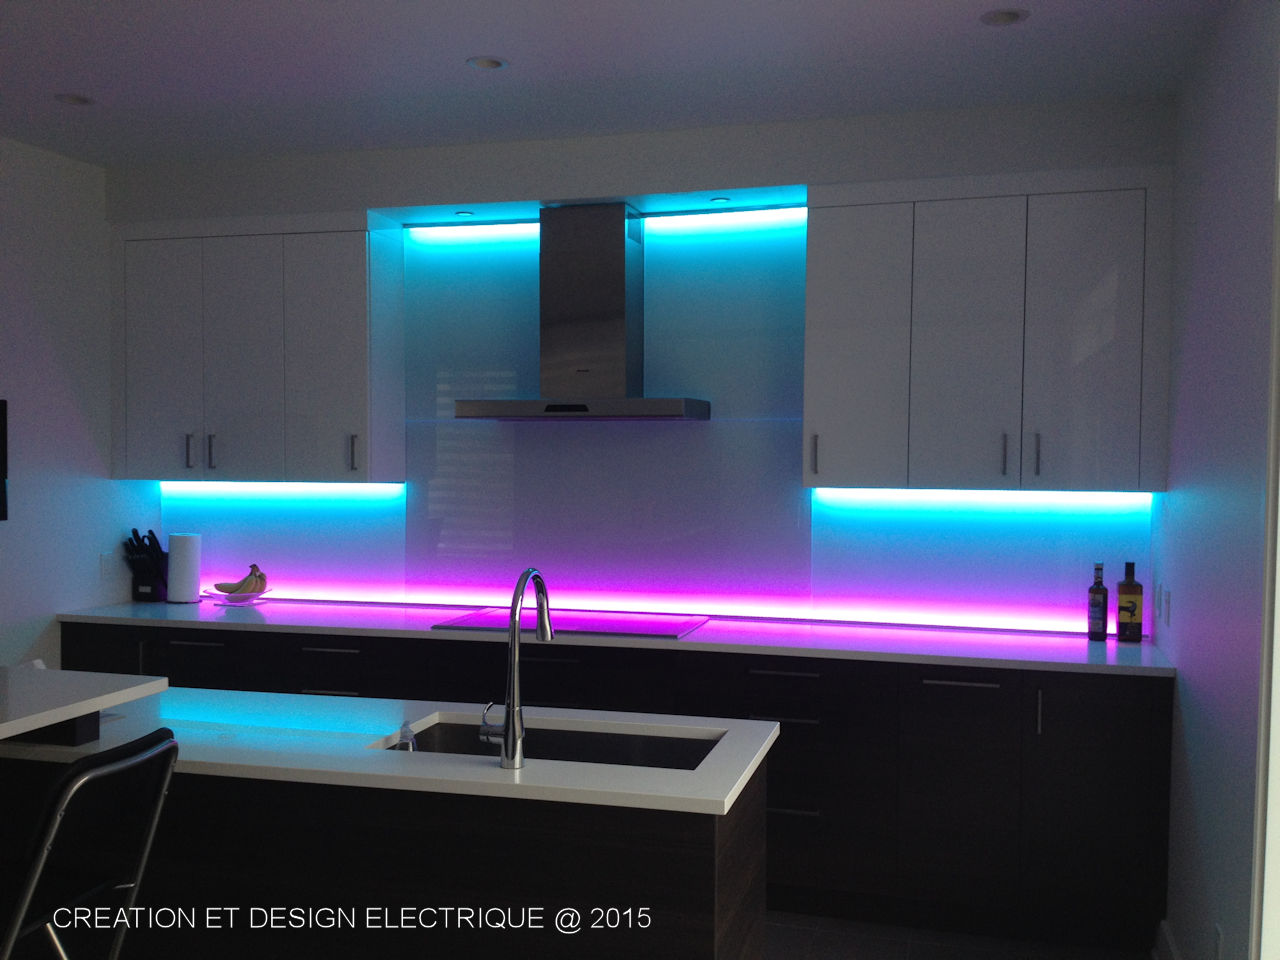 Installation Ruban Led Comment Installer Un Ruban Led Dans La Cuisine